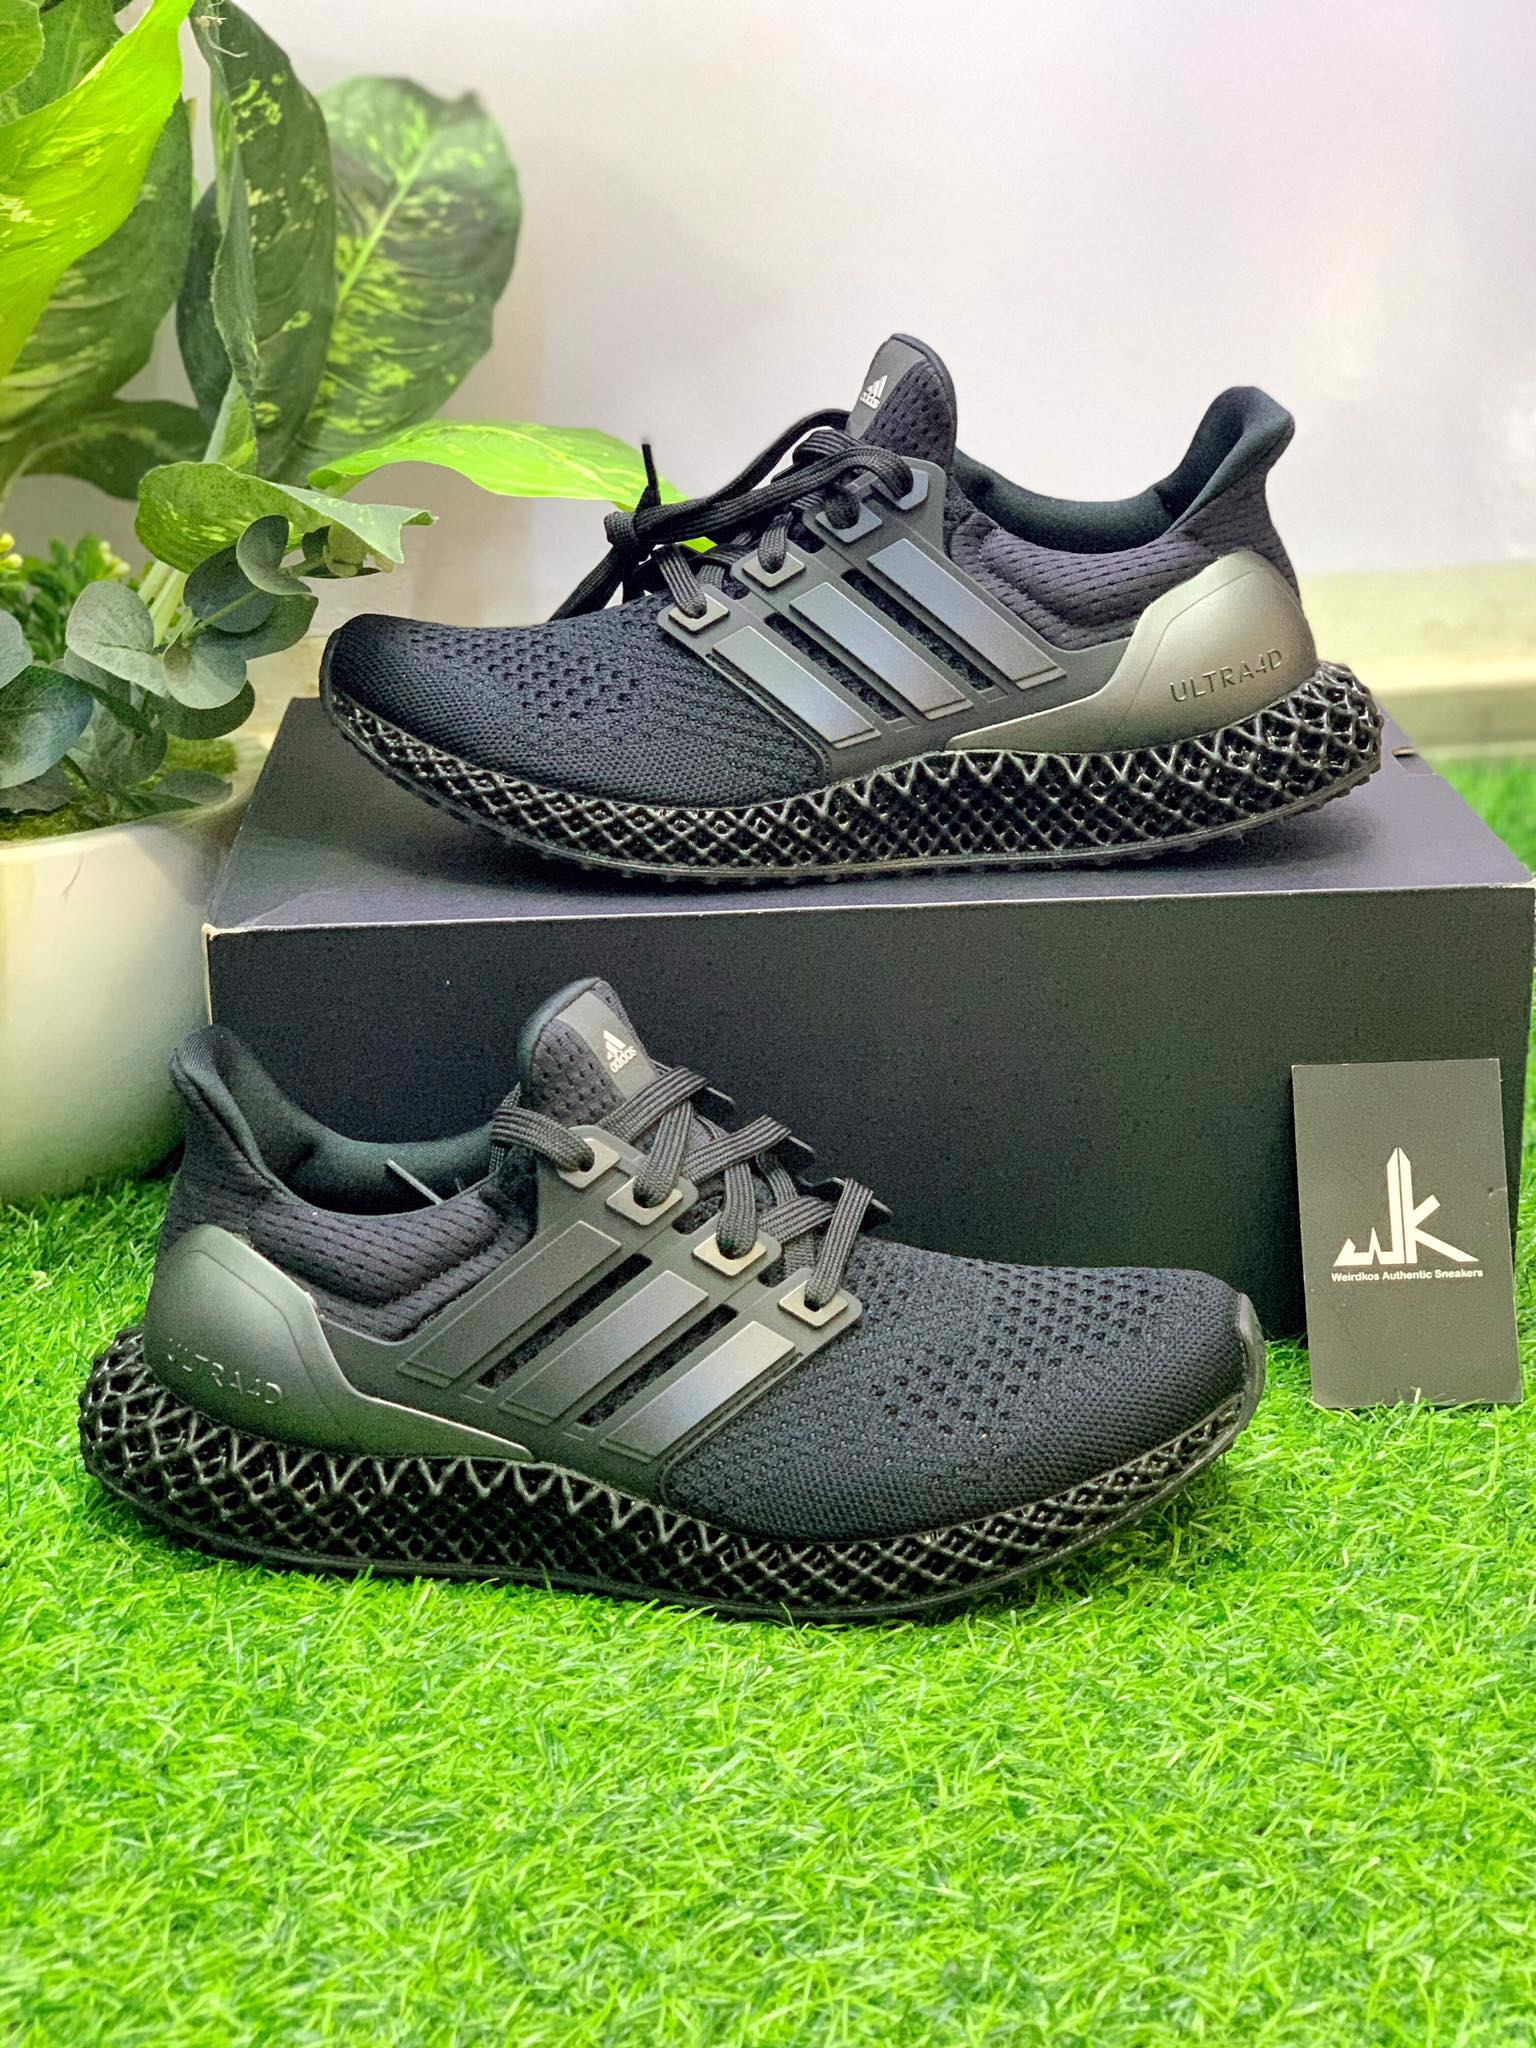 FY4286 Ultra 4D Triple Black